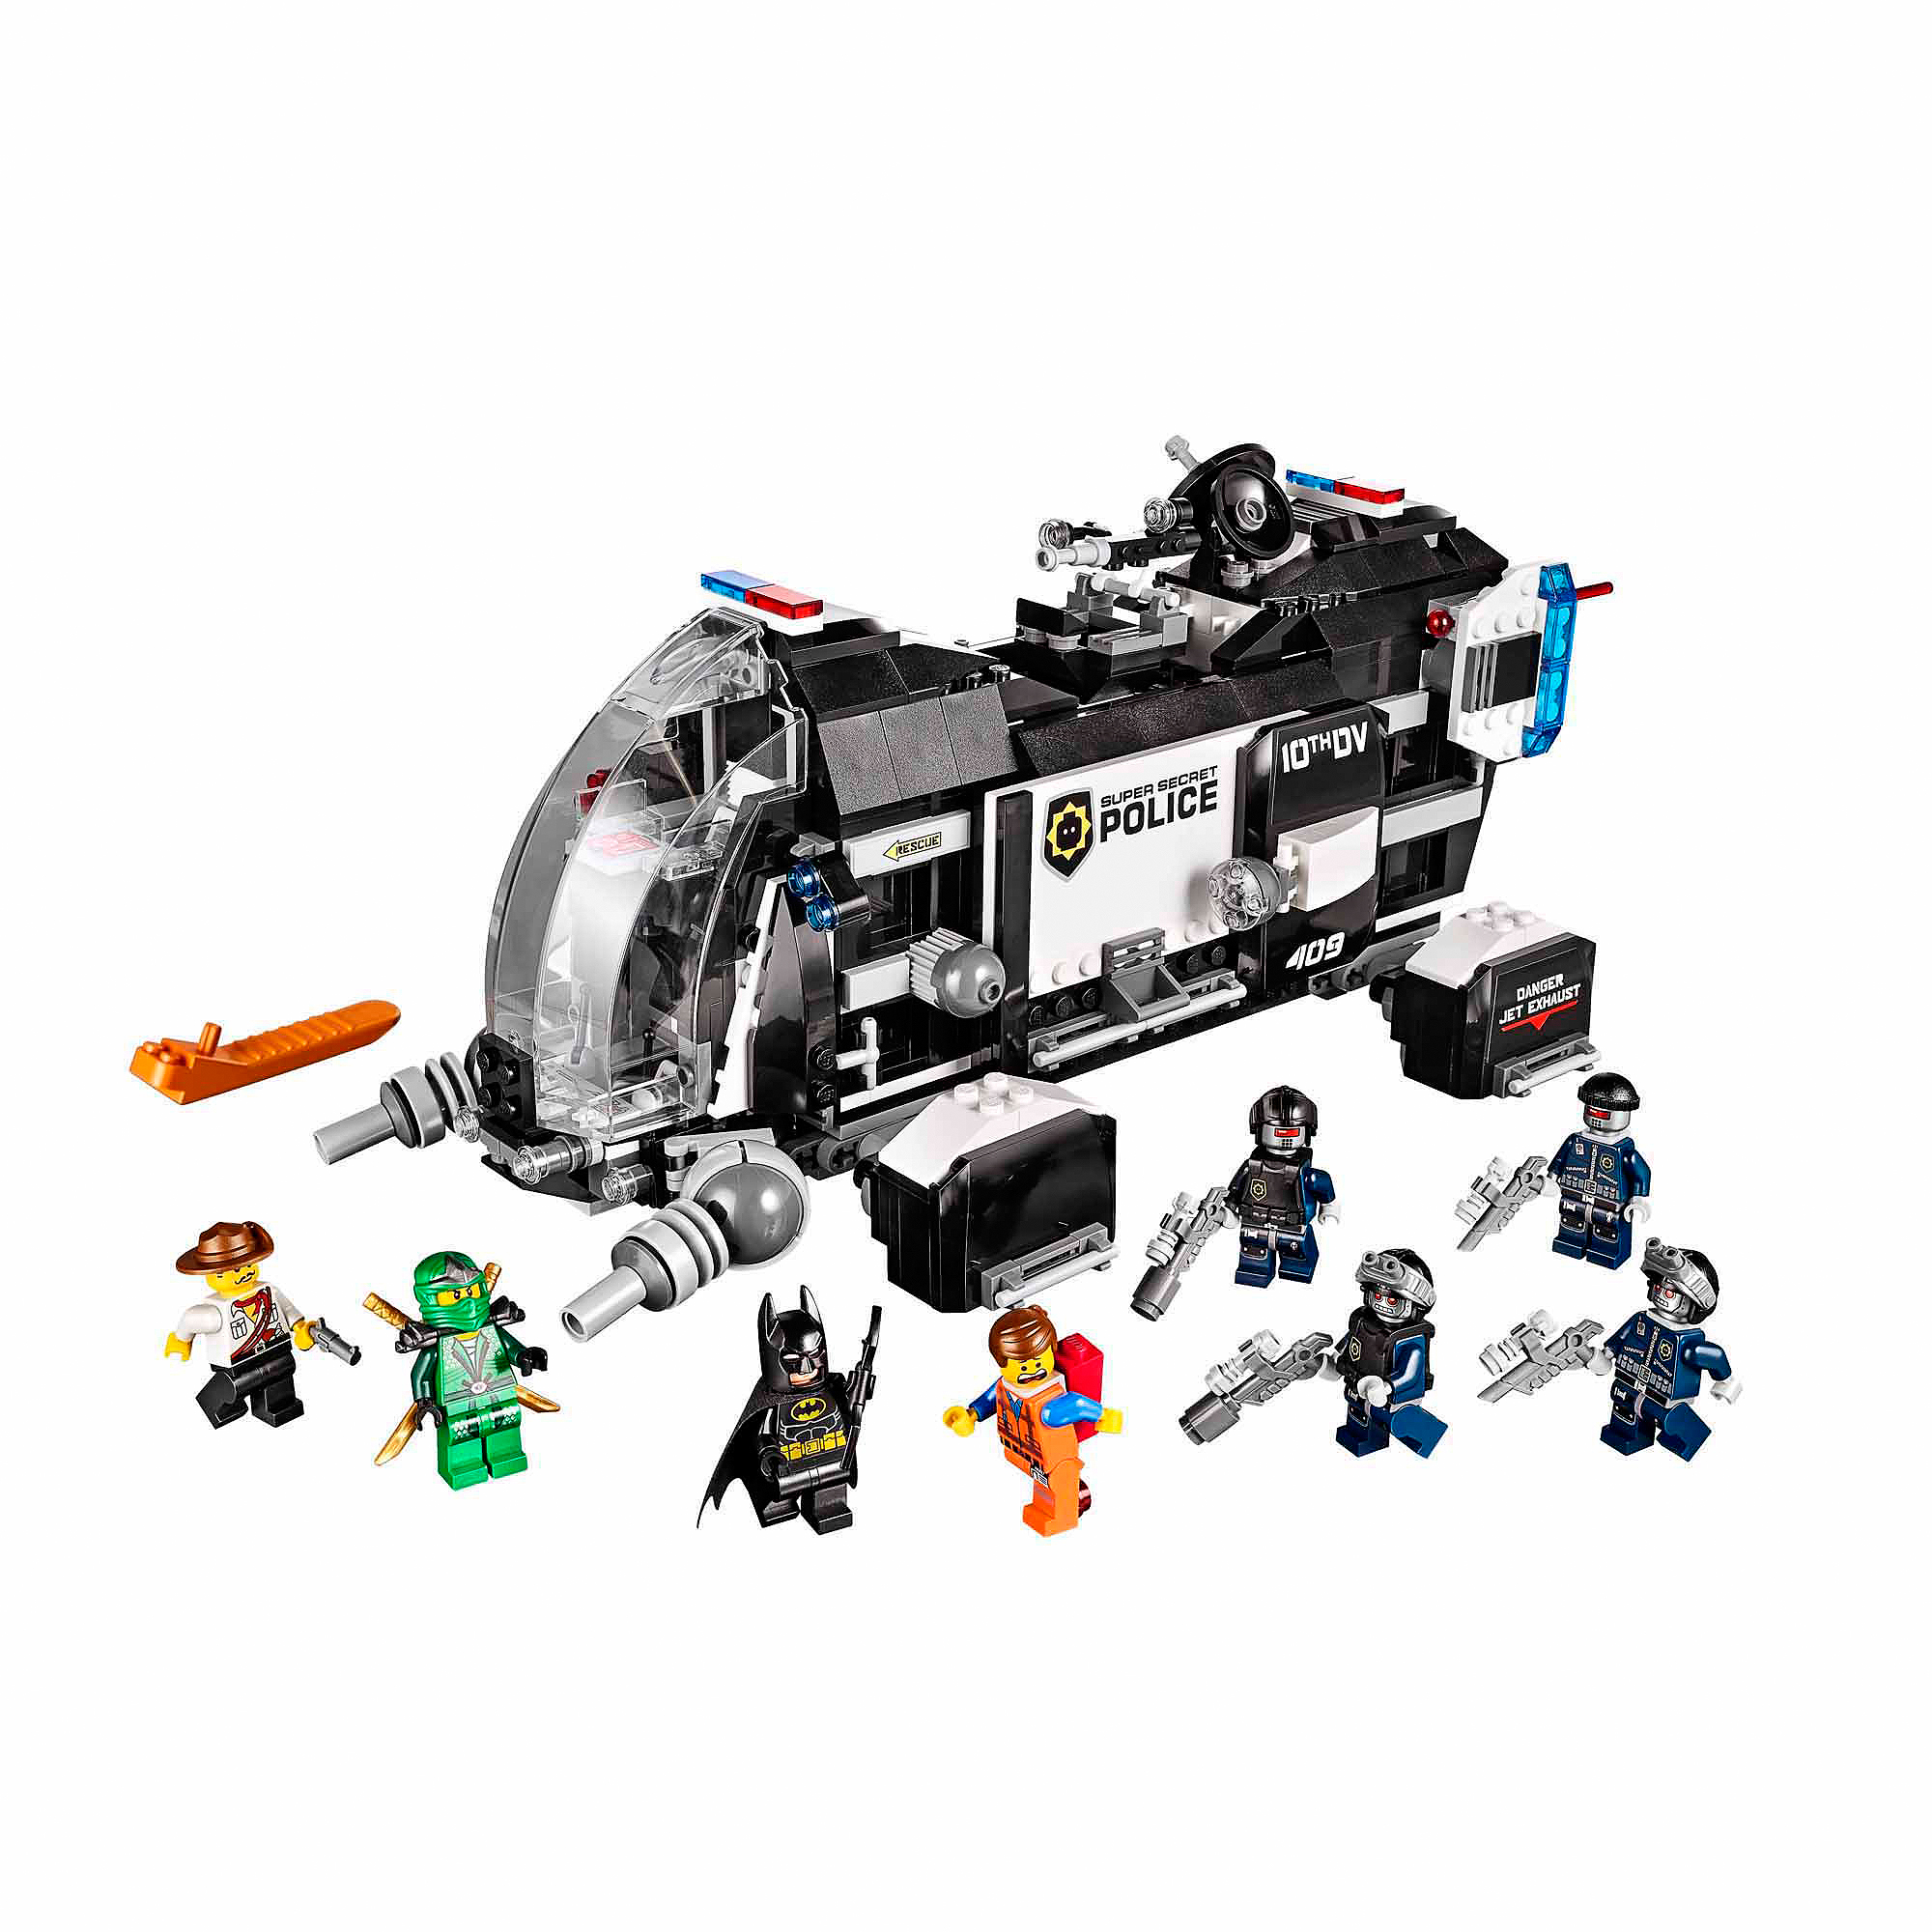 LEGO Movie Super Secret Police Dropship - Walmart.com